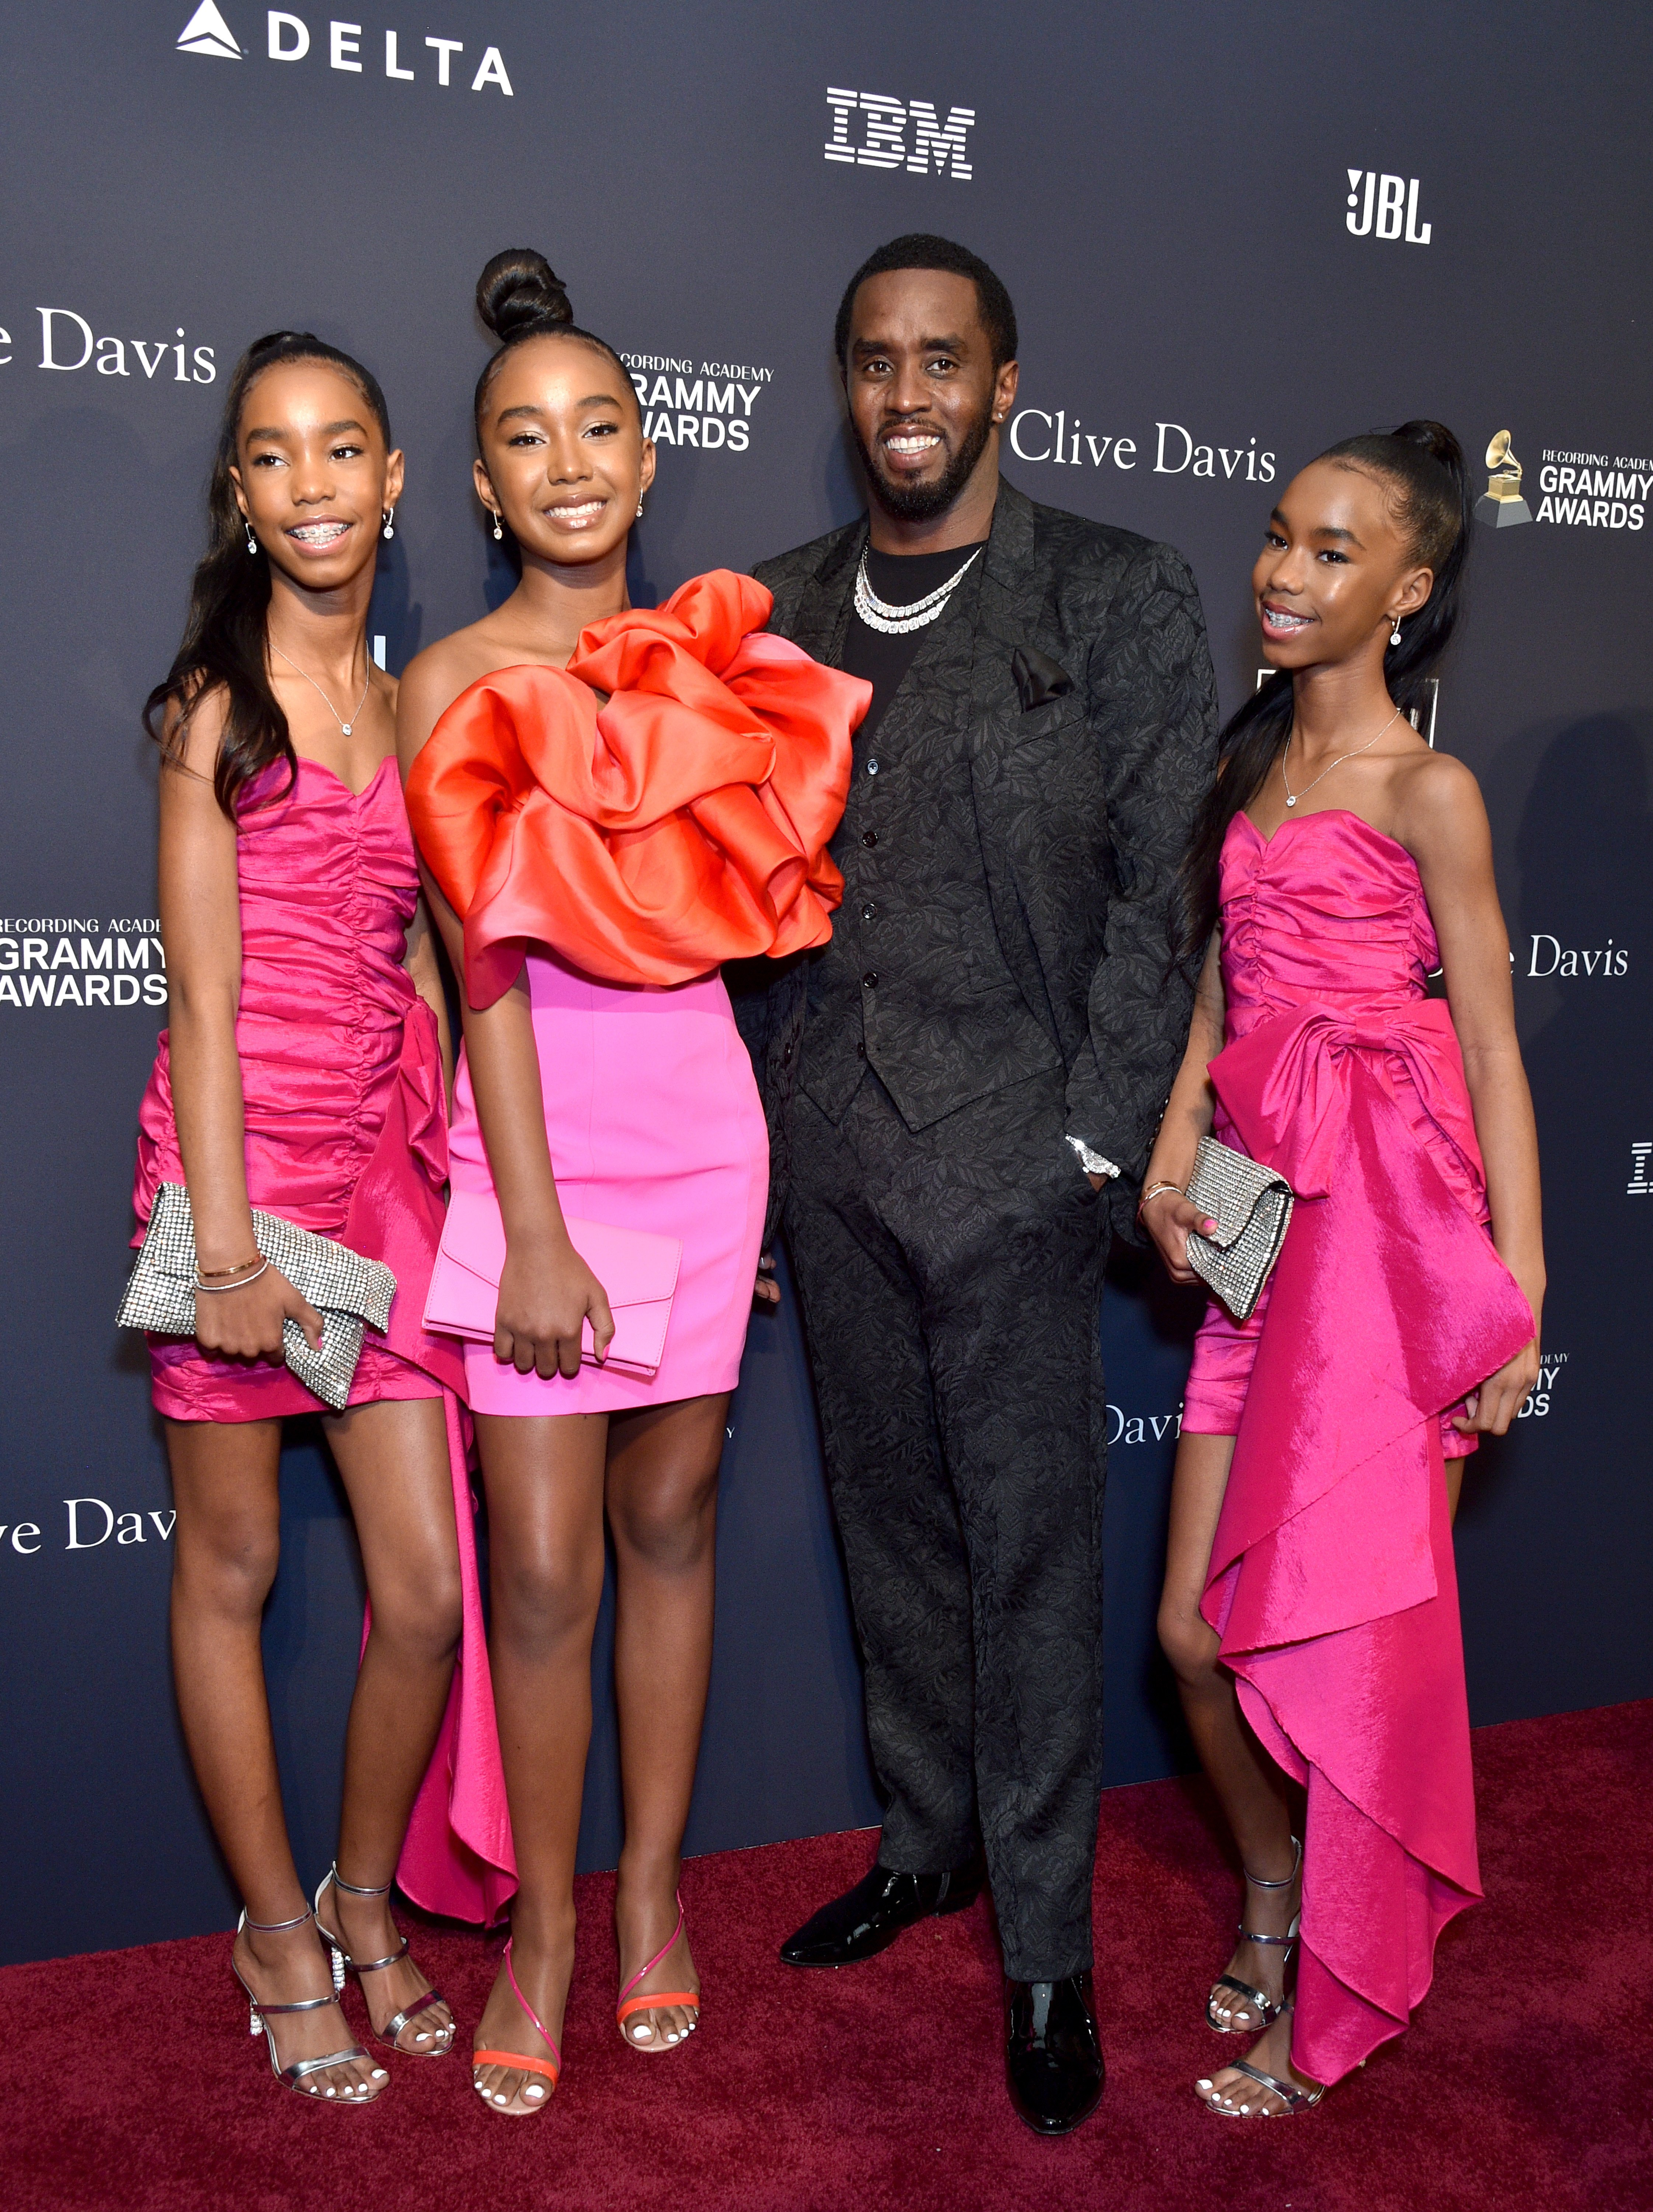 """Sean """"Diddy"""" Combs and his daughters at the Pre-Grammy Gala on January 25, 2020 in Beverly Hills, California. 